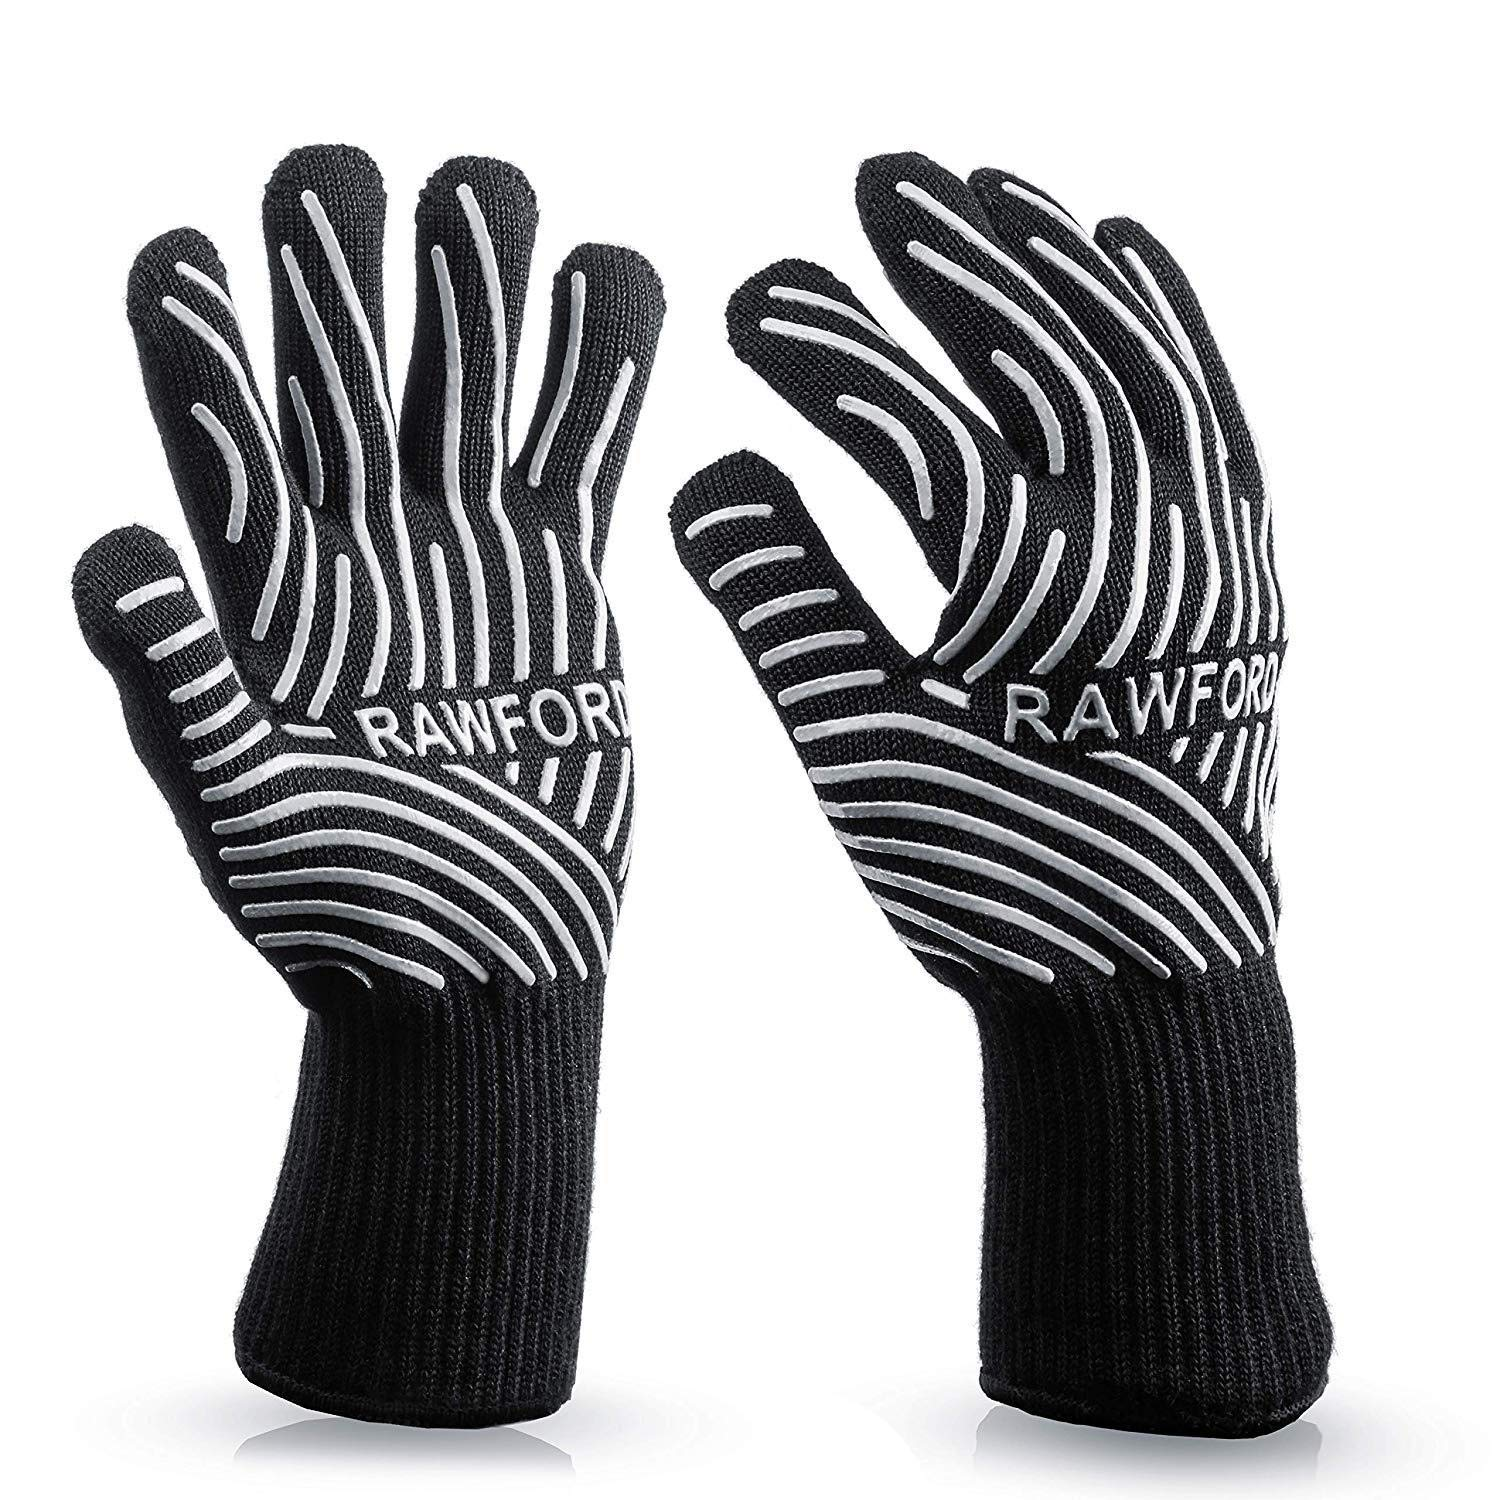 ZJYSM Comfortable, Wearable, Flexible, Lightweight, Amazon Explosion, 500-800 Degrees High Temperature Aramid Fire Retardant Microwave Oven BBQ Barbecue Gloves Gloves